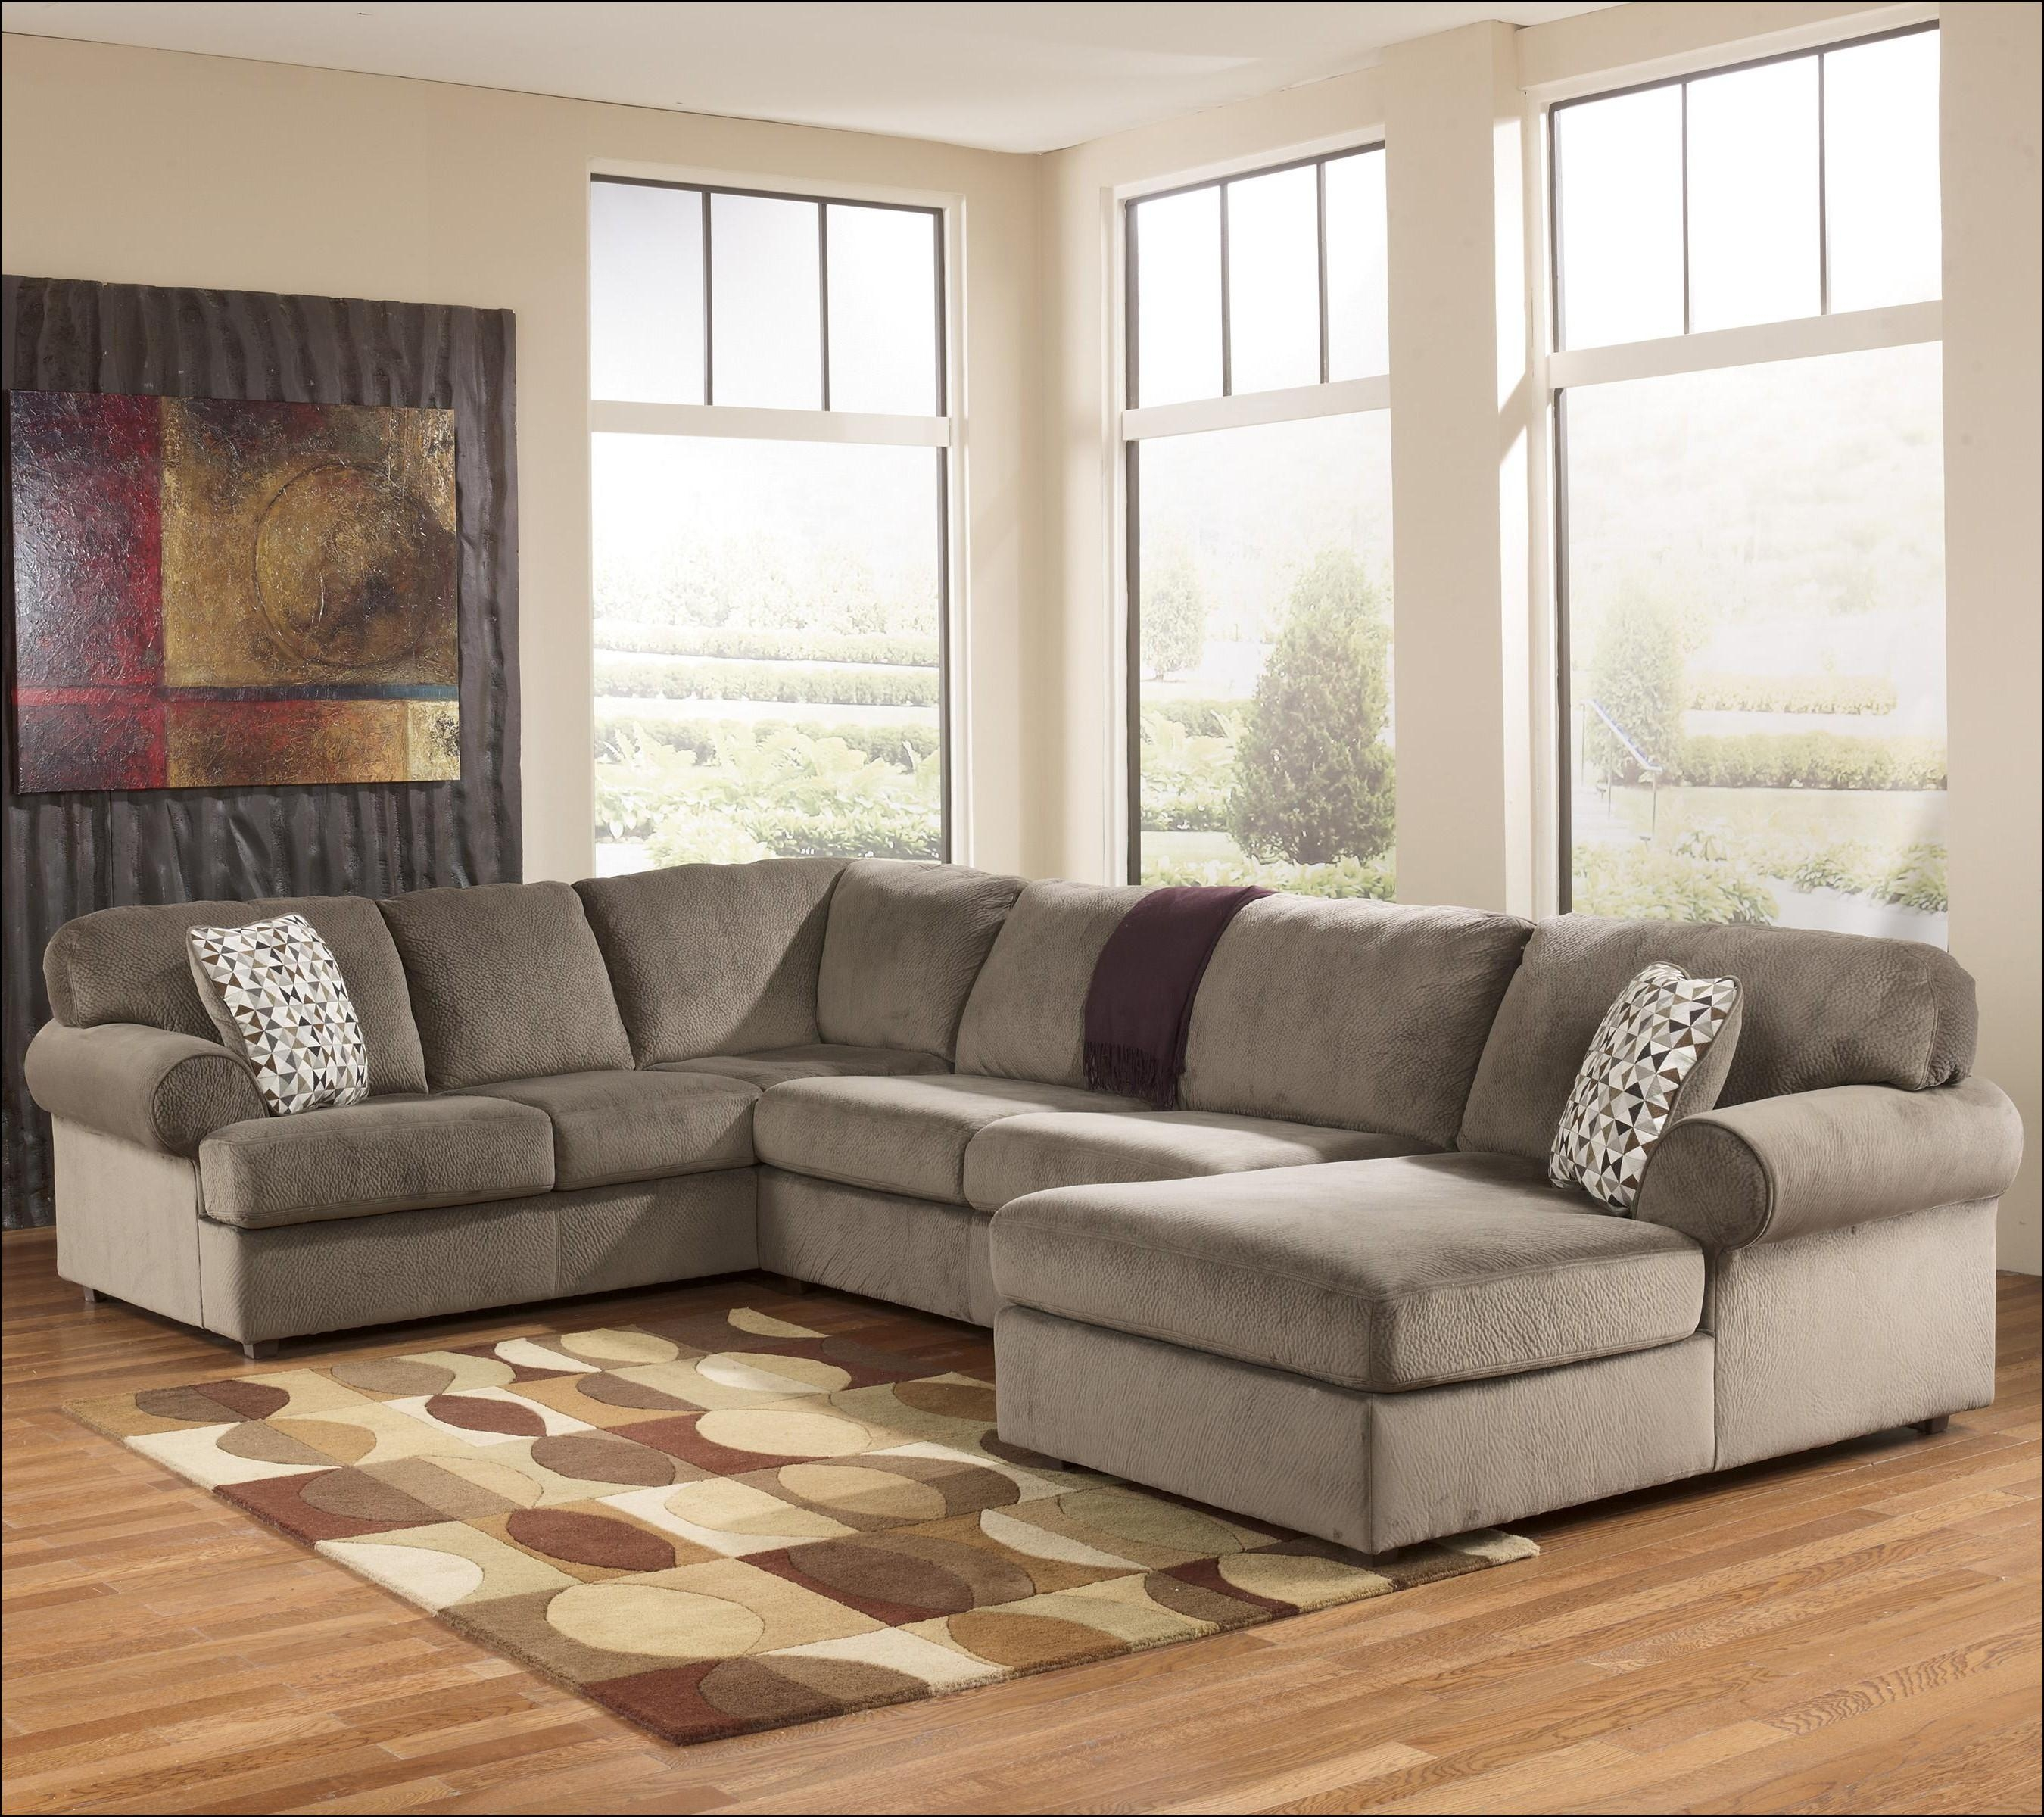 Ashley Furniture Missoula: 20 Best Ideas Craigslist Sectional Sofas